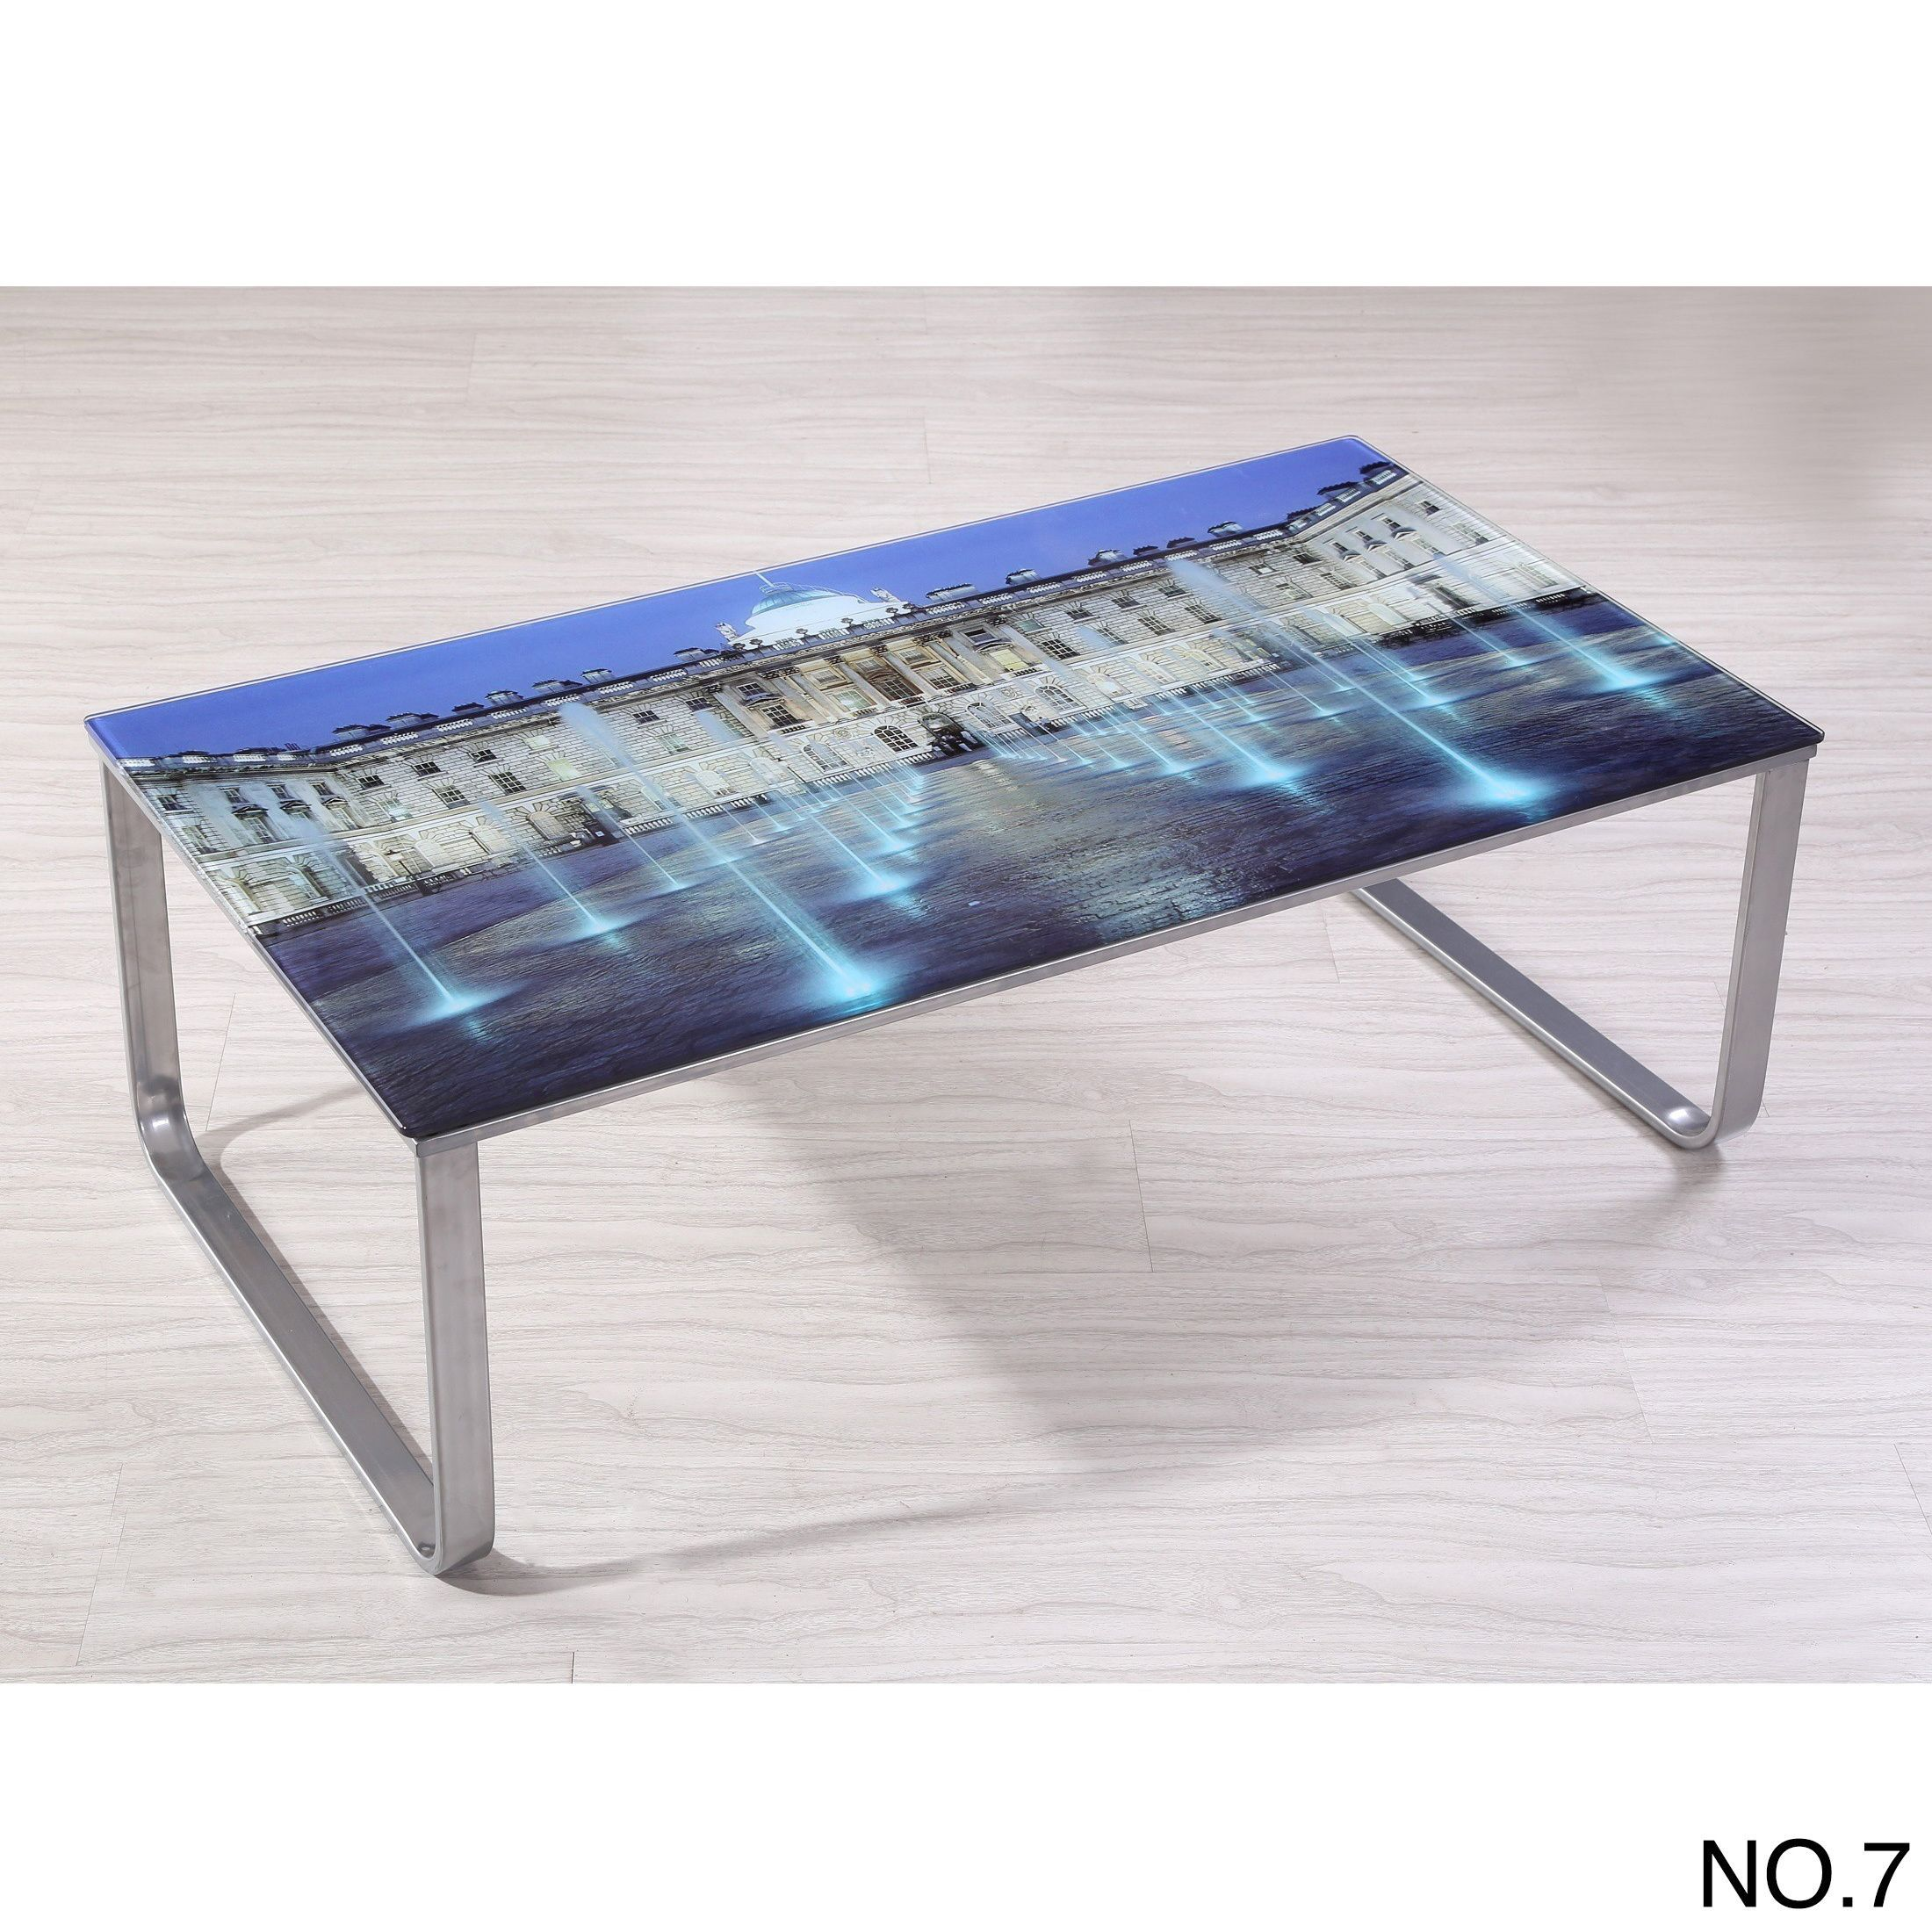 US Pride Furniture Carter Scenery Pattern Glass Top Coffee Table (NO.7 Picture  Glass Top Coffee Table), Silver